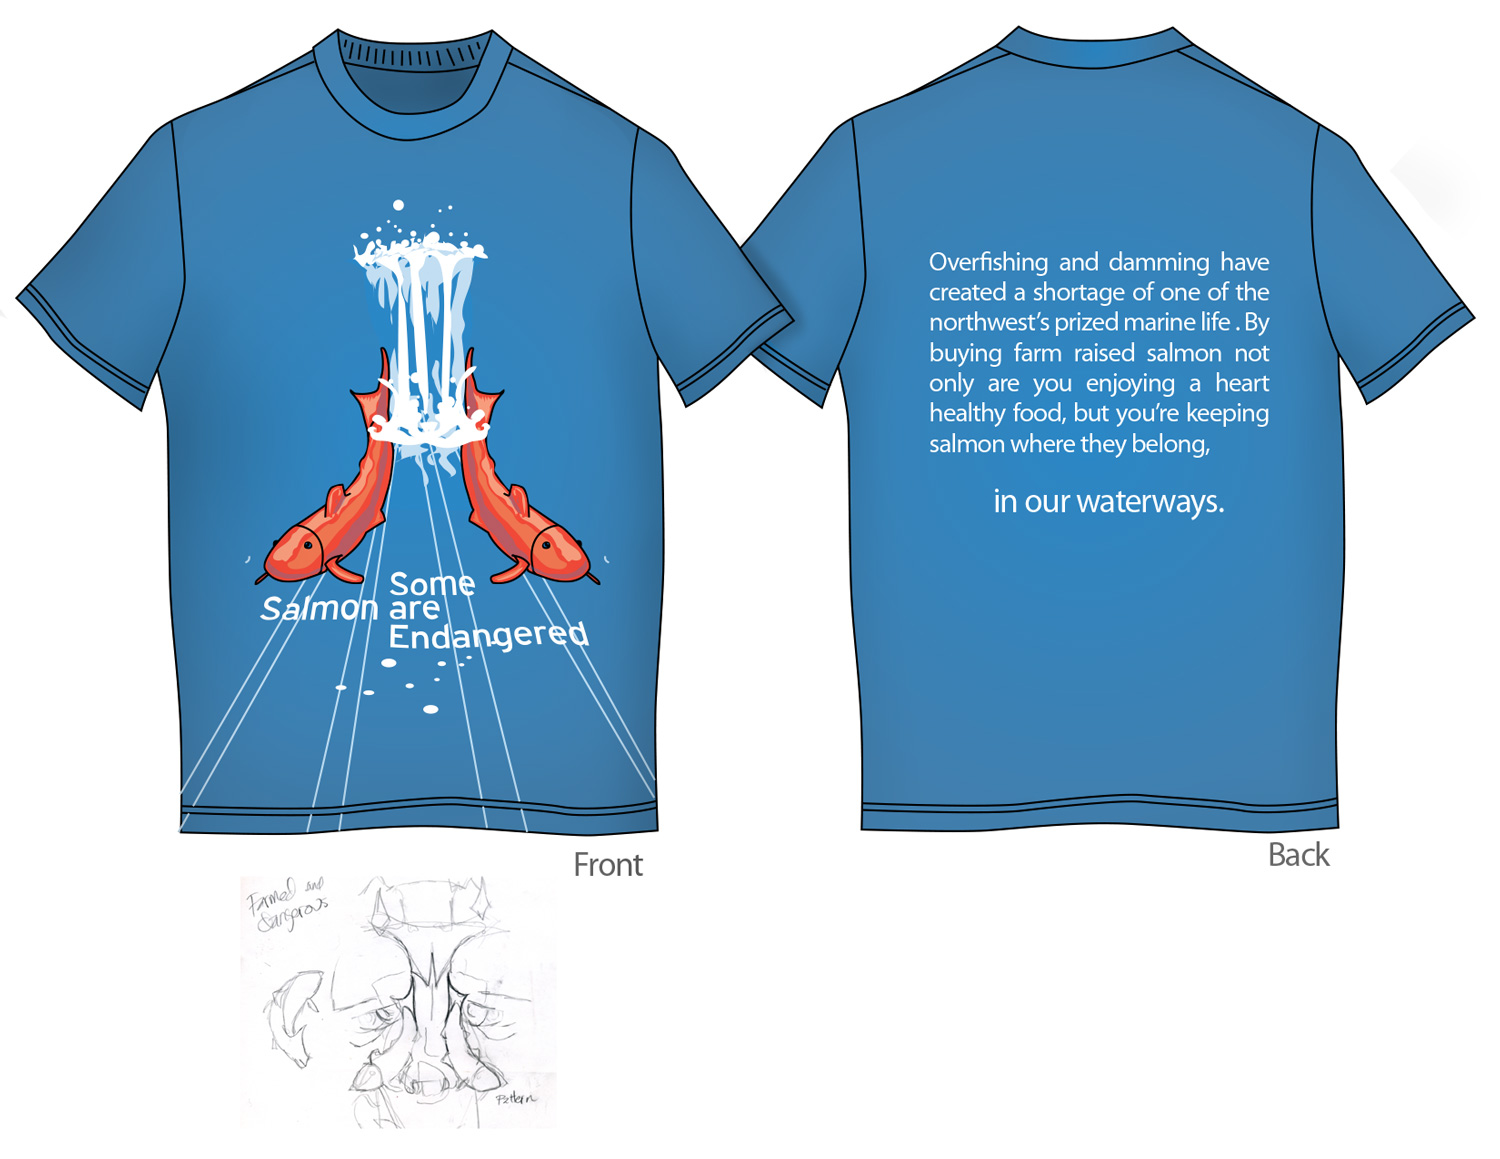 Pro-Farm Salmon T-Shirt -  This T-shirt was designed as part of a school project. Like other T's this one was based off of a sketch which was then colorized. On the back was some simple type reinforcing the pro-farm salmon campain direction.